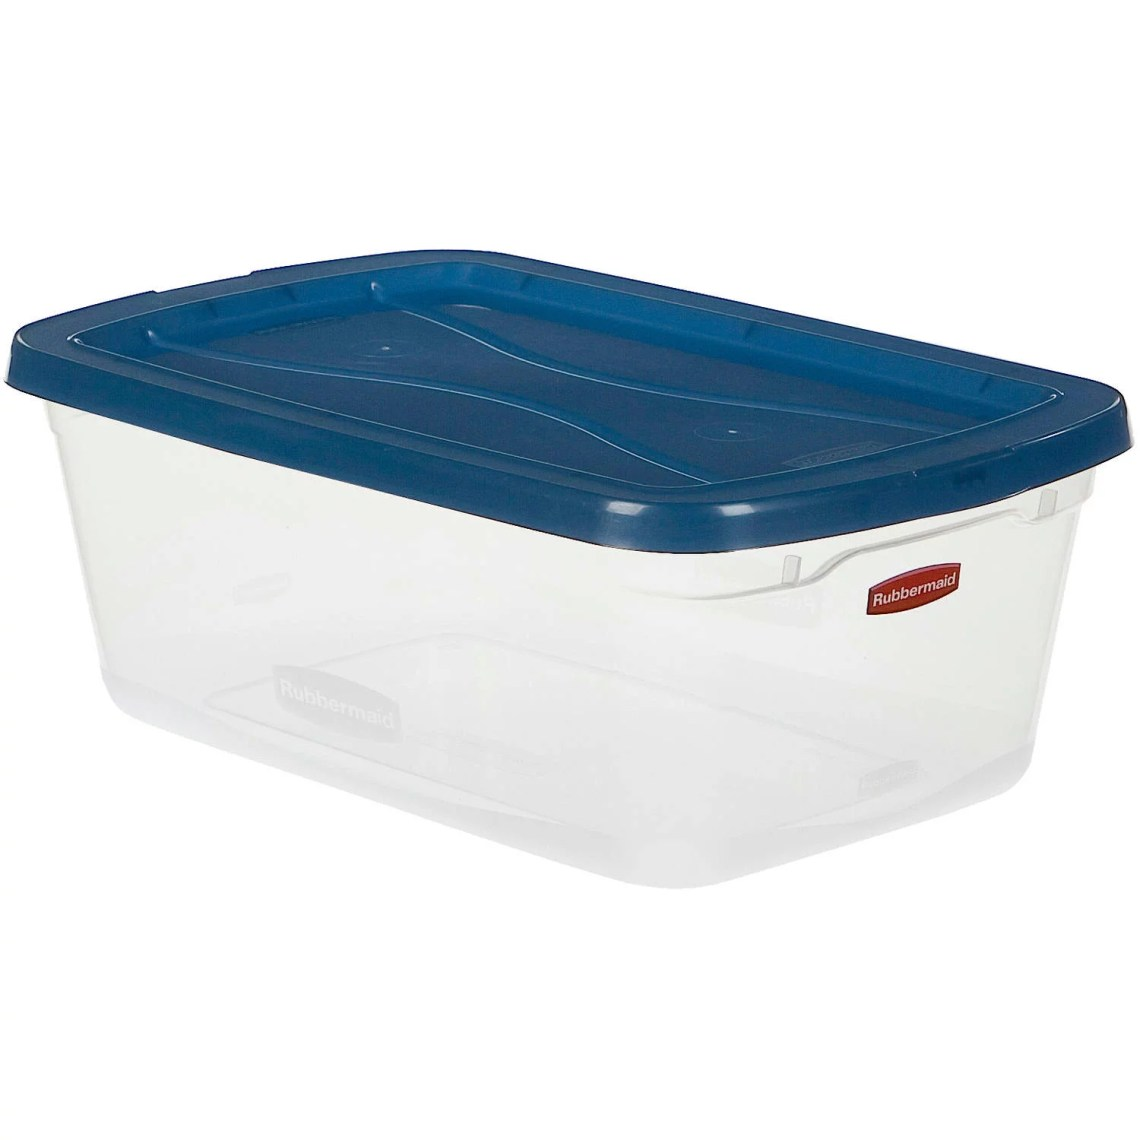 Beautiful Plastic Storage Bins With Lids - 5afcacb9-9527-4feb-9ab9-a393e5ae858d_1  Photograph_722496.jpeg